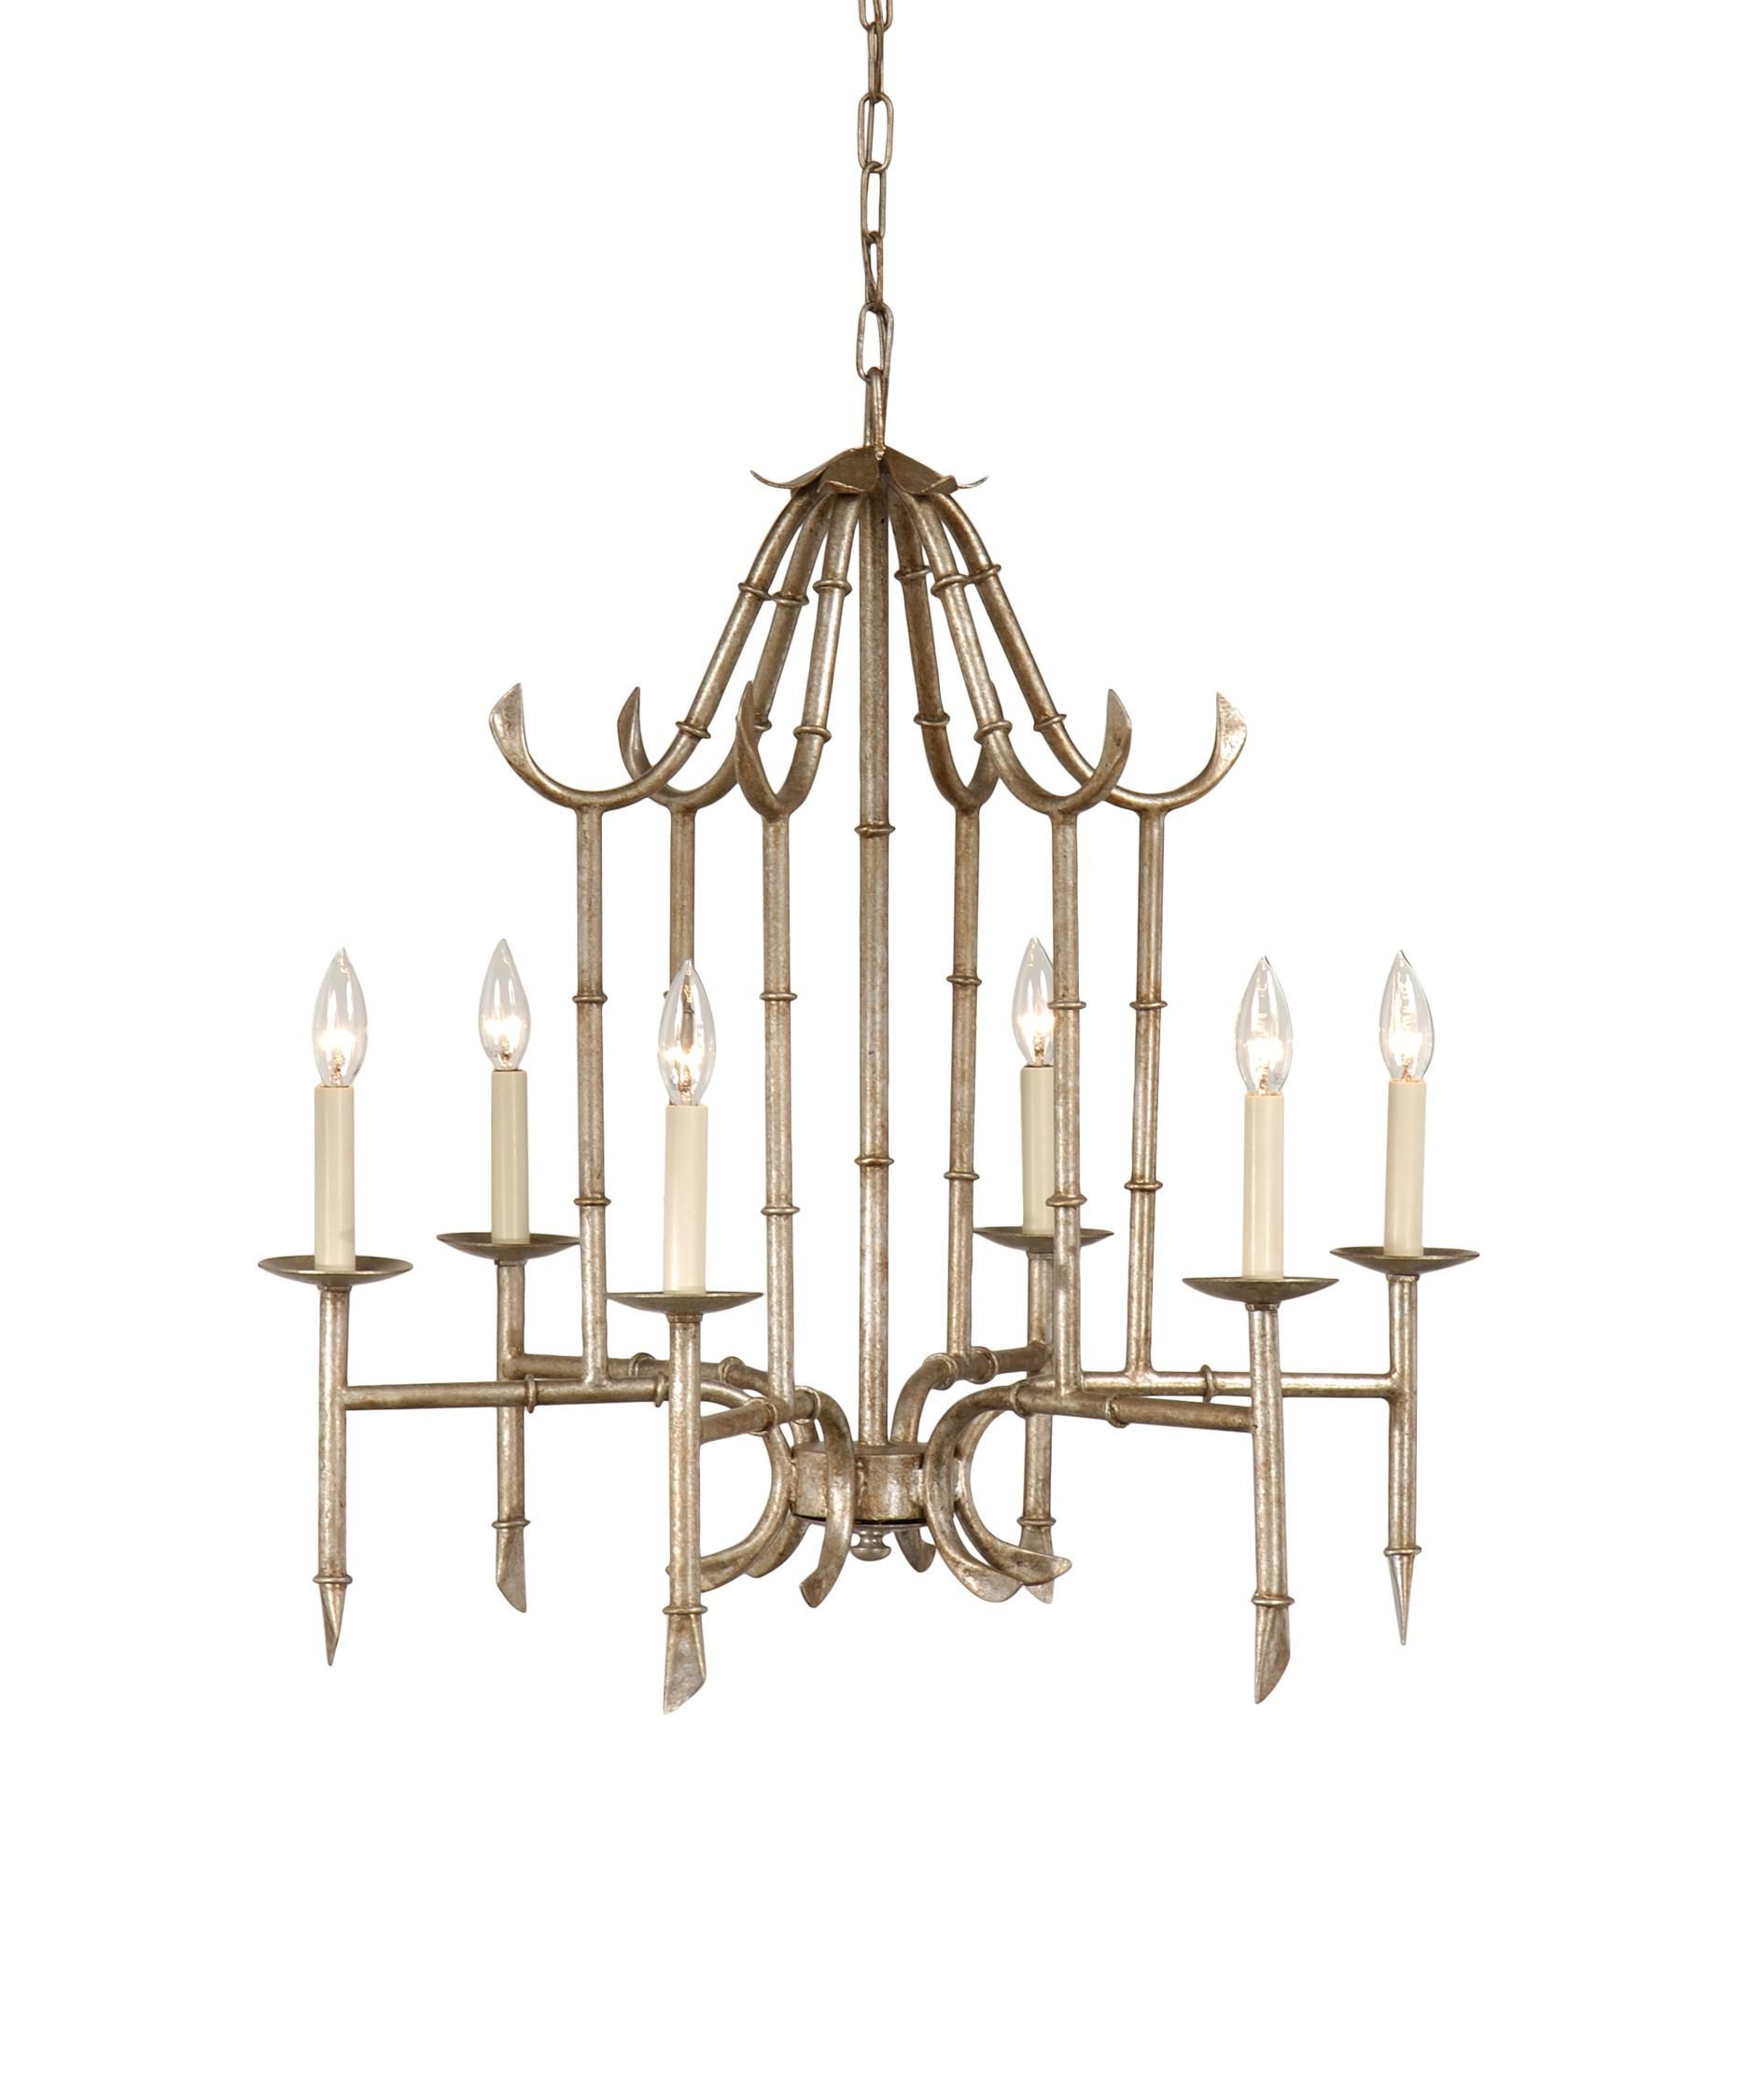 Wildwood bamboo chandelier antique silver antiques and silvers wildwood bamboo chandelier arubaitofo Images